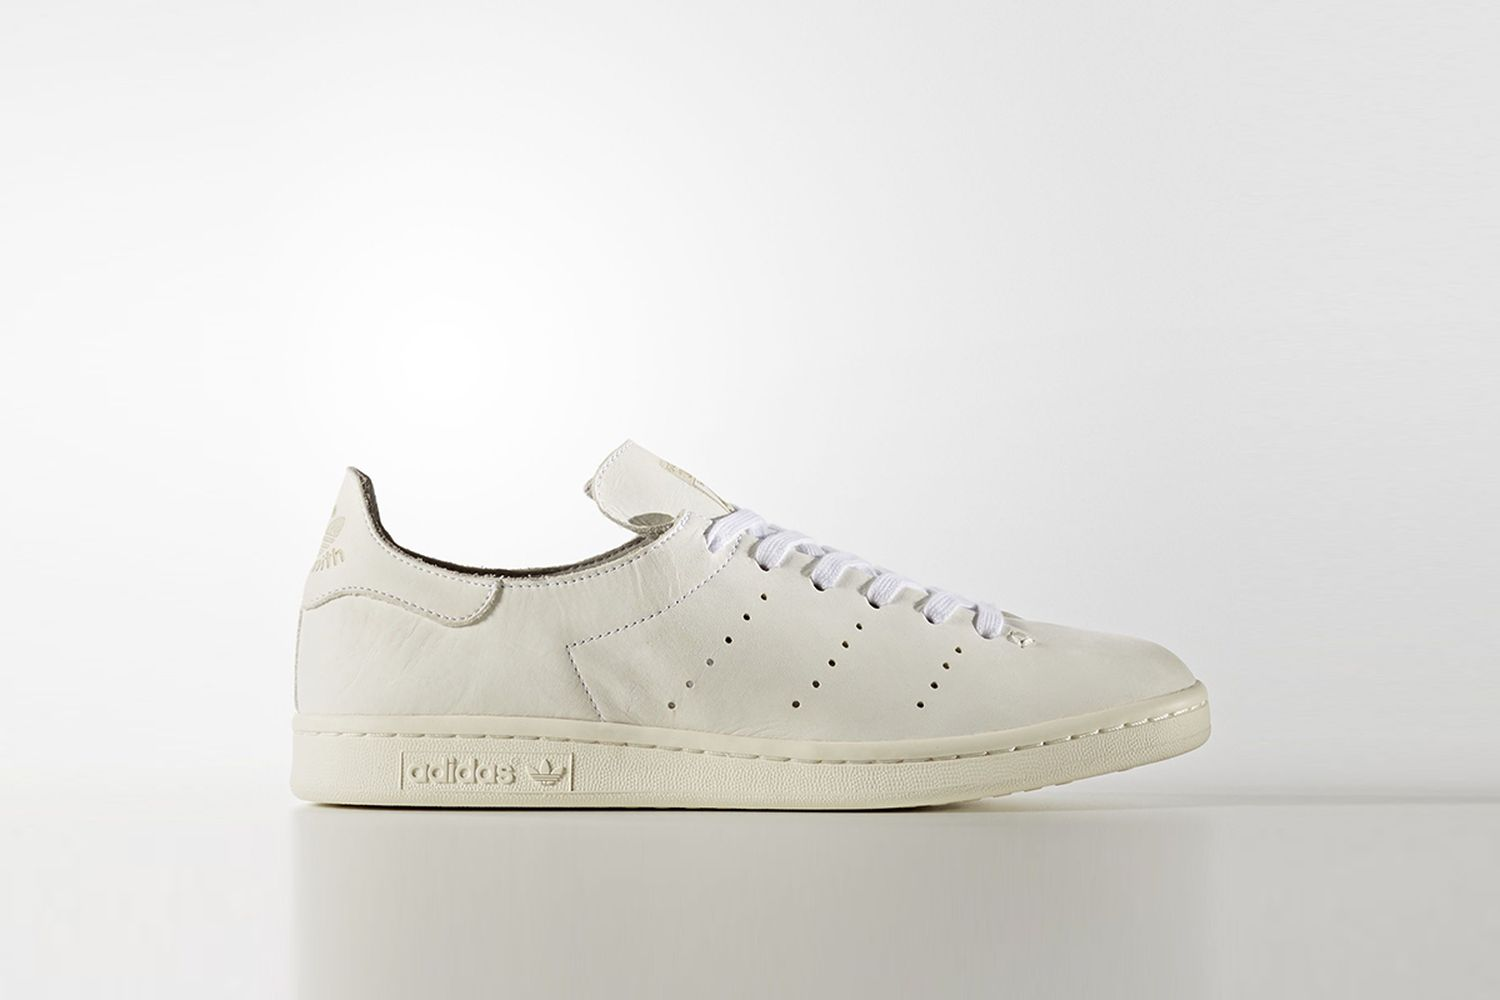 seta Orrore Spoglio  adidas Originals Stan Smith Leather Sock Highsnobiety